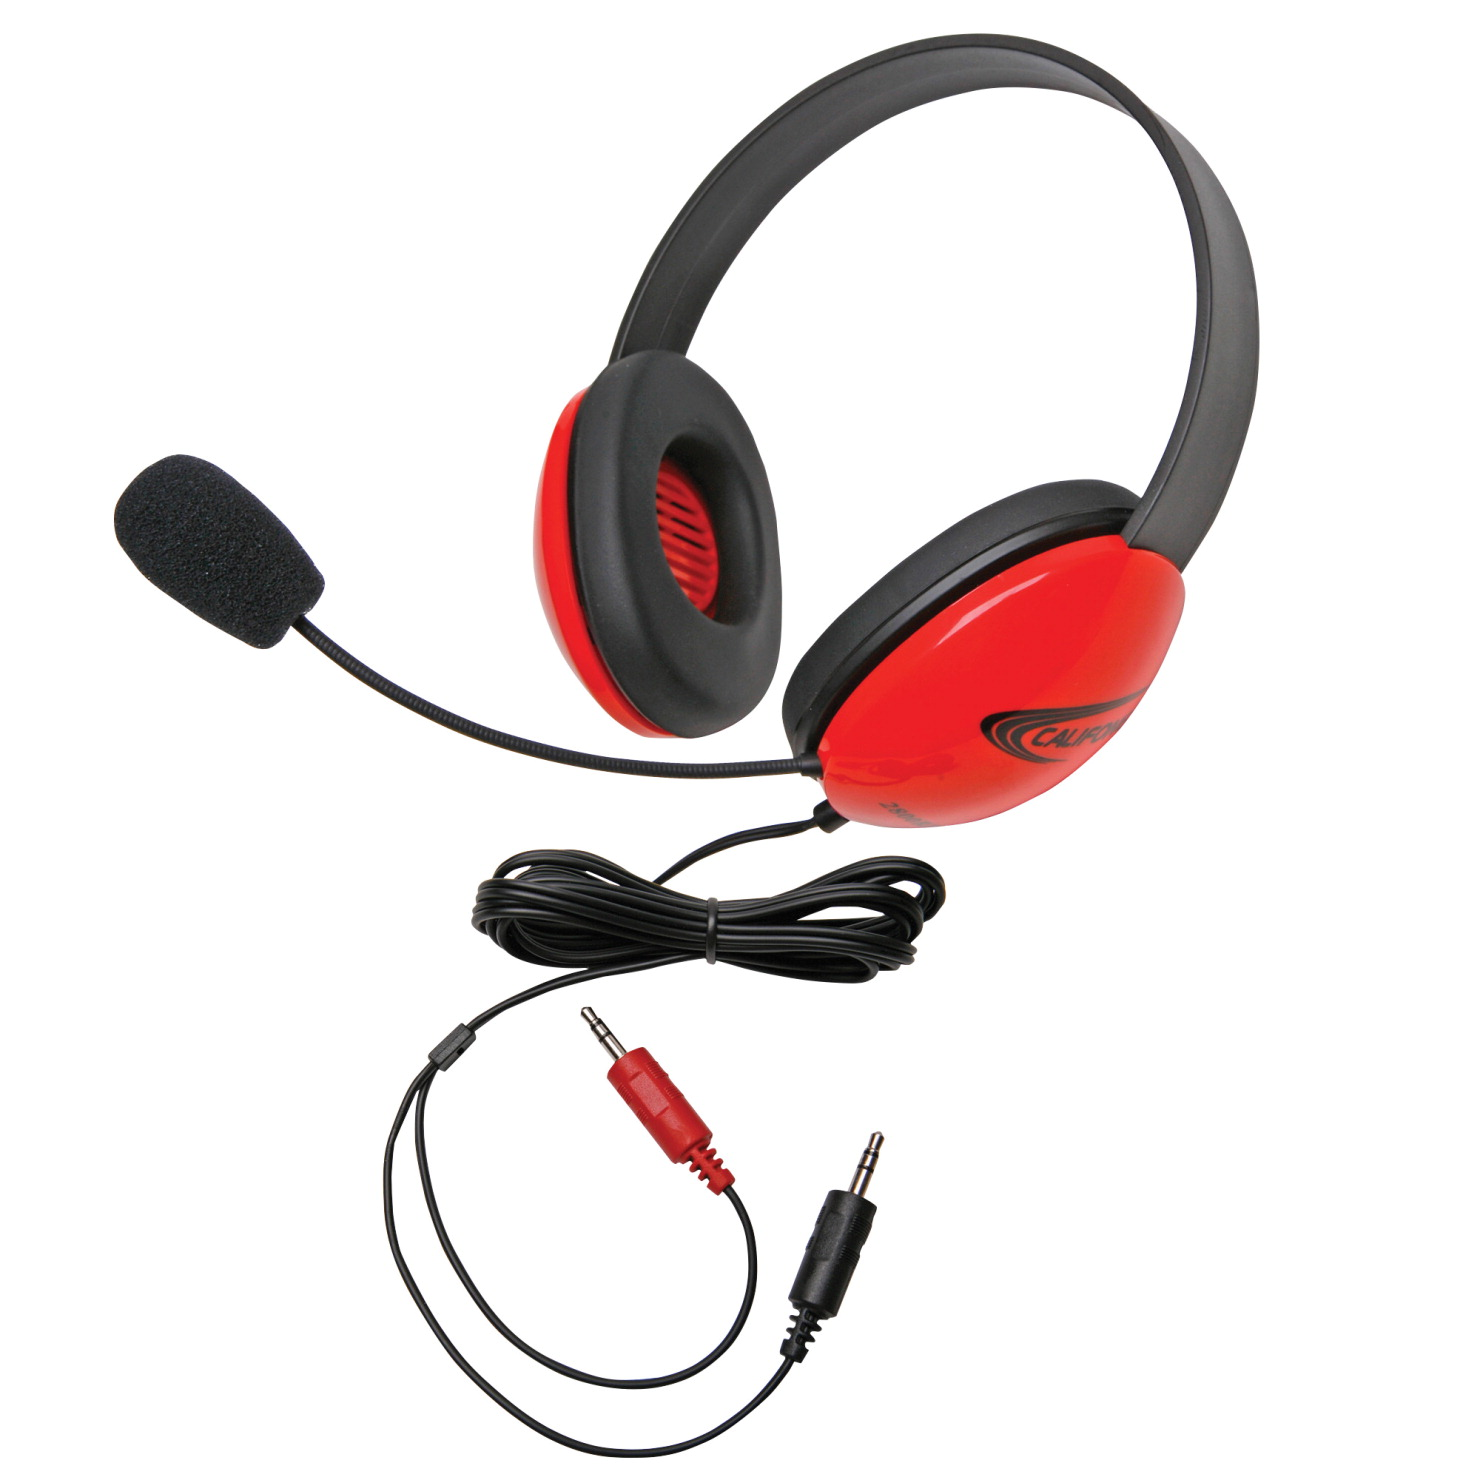 Califone Listening First 2800-AV Over-Ear Stereo Headset with Gooseneck Microphone, Dual 3.5mm Plug, Red, Each